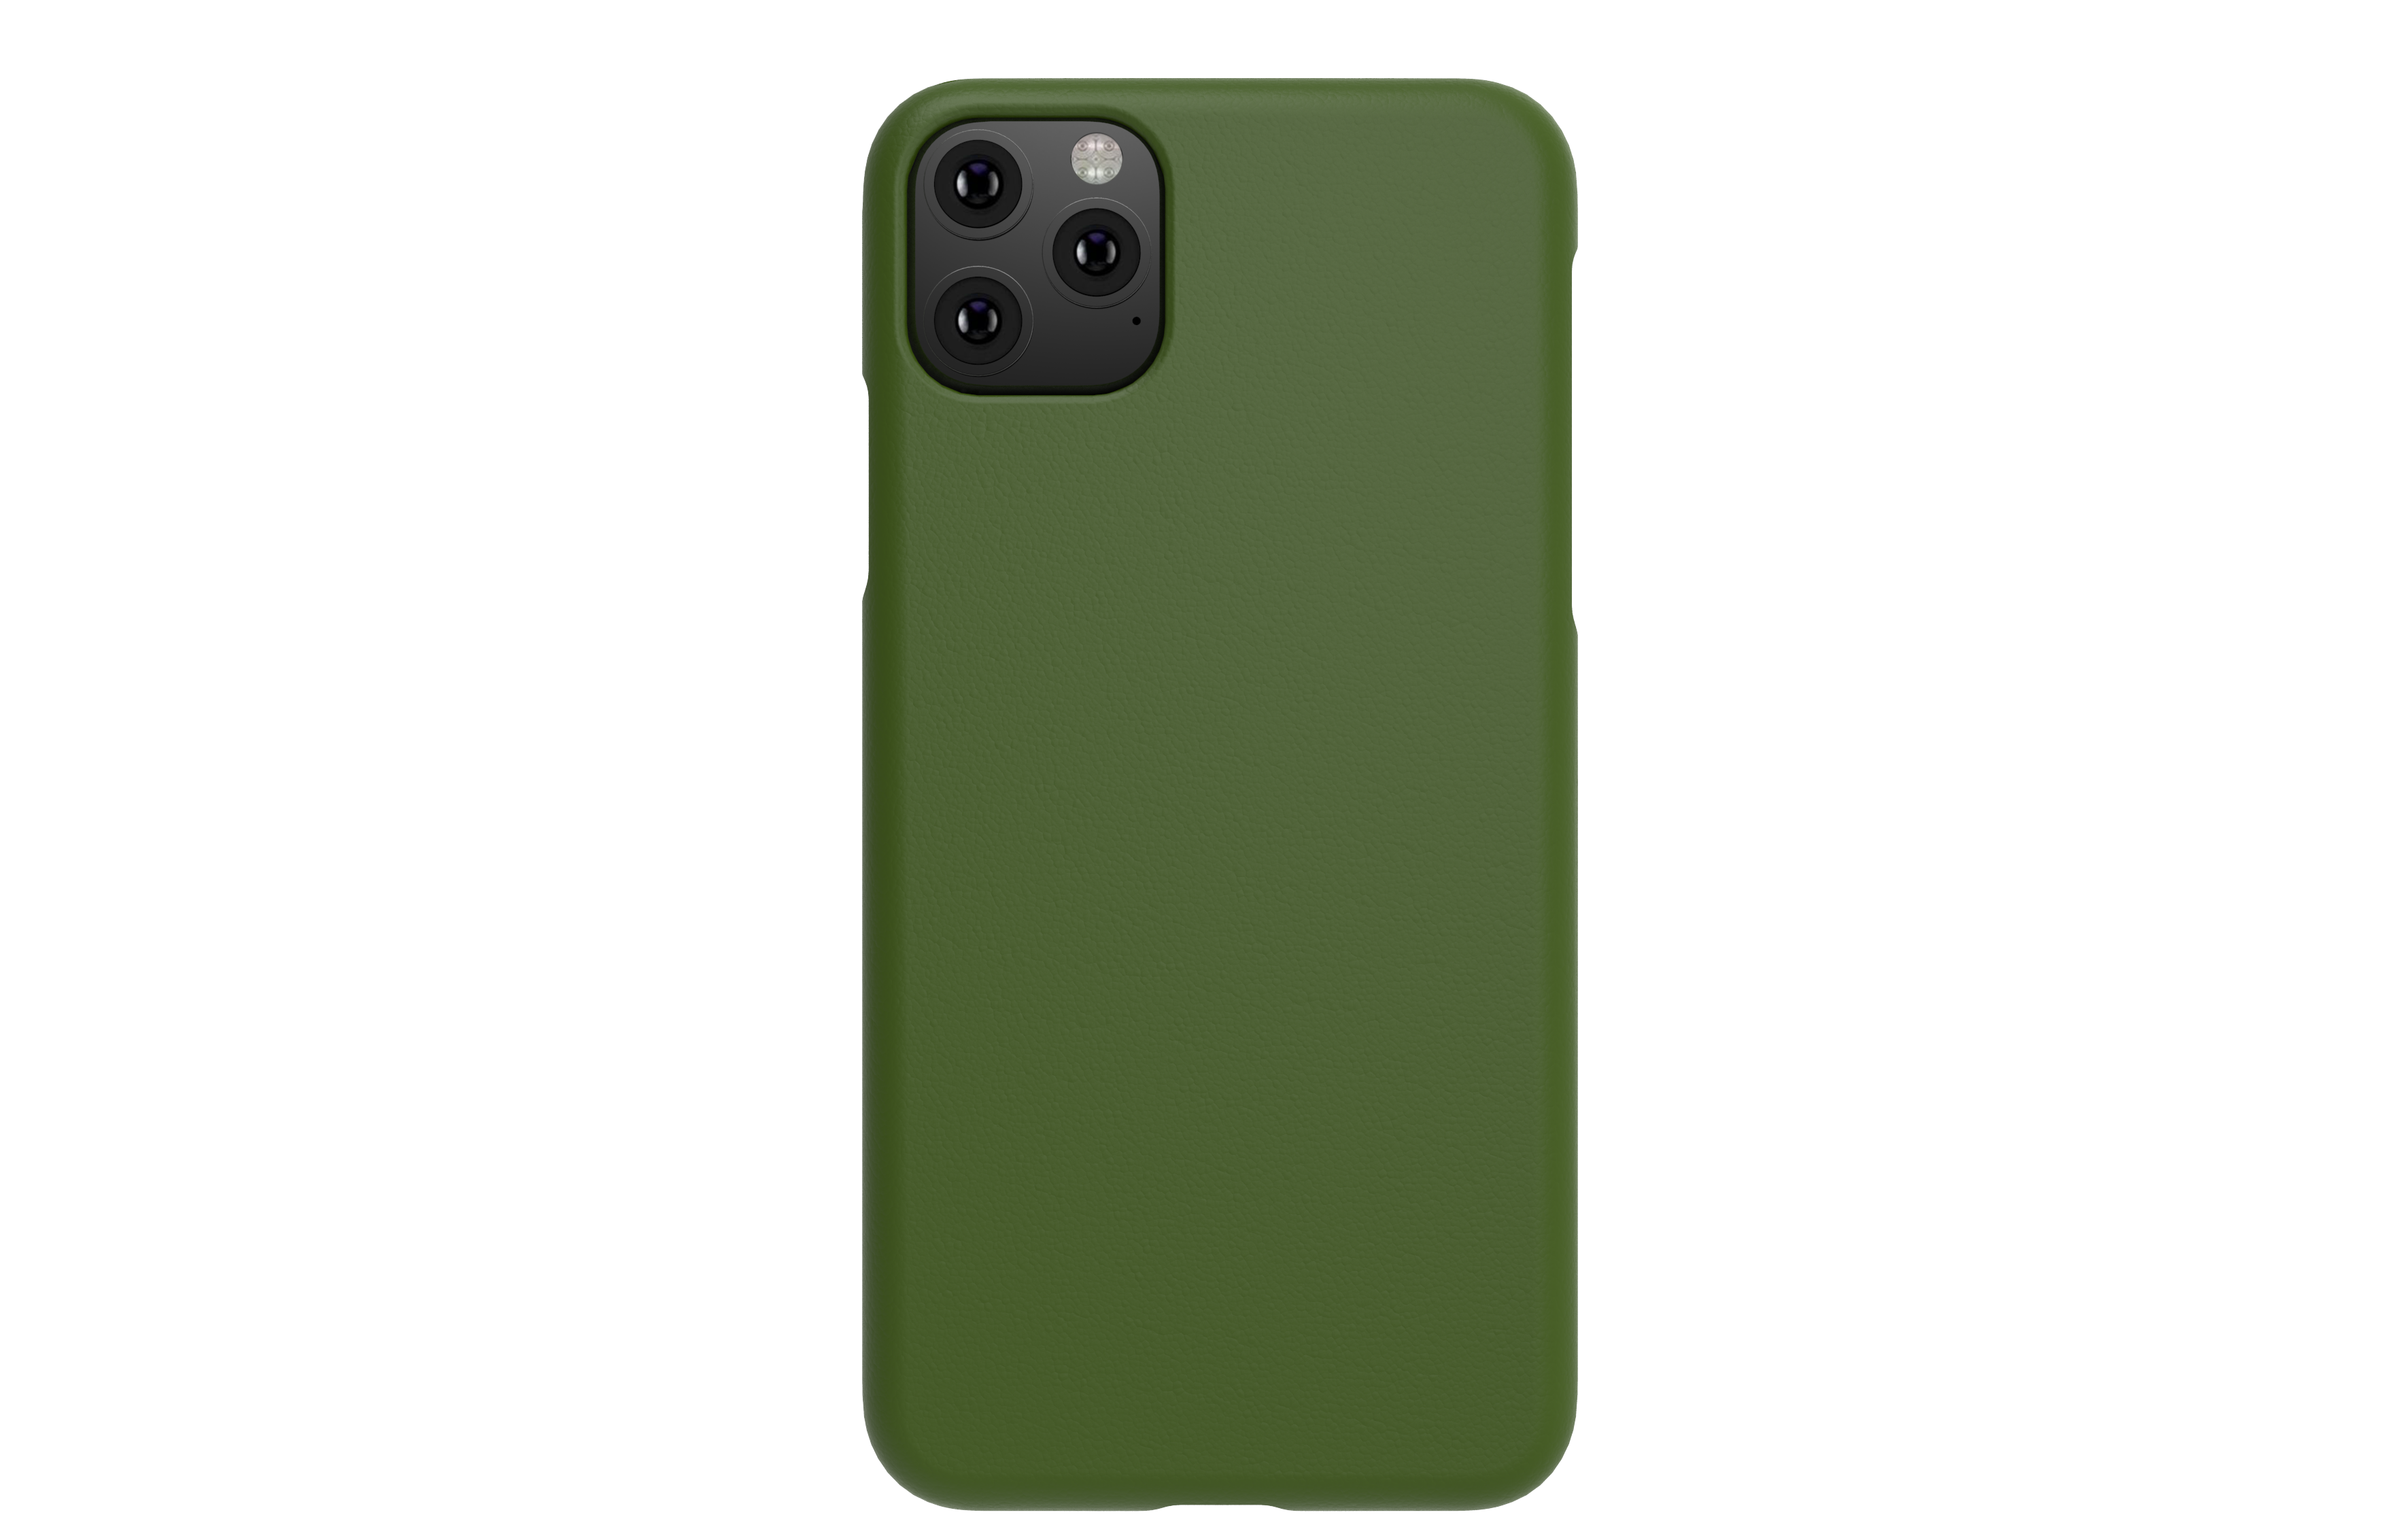 iphone11 pro max green-1